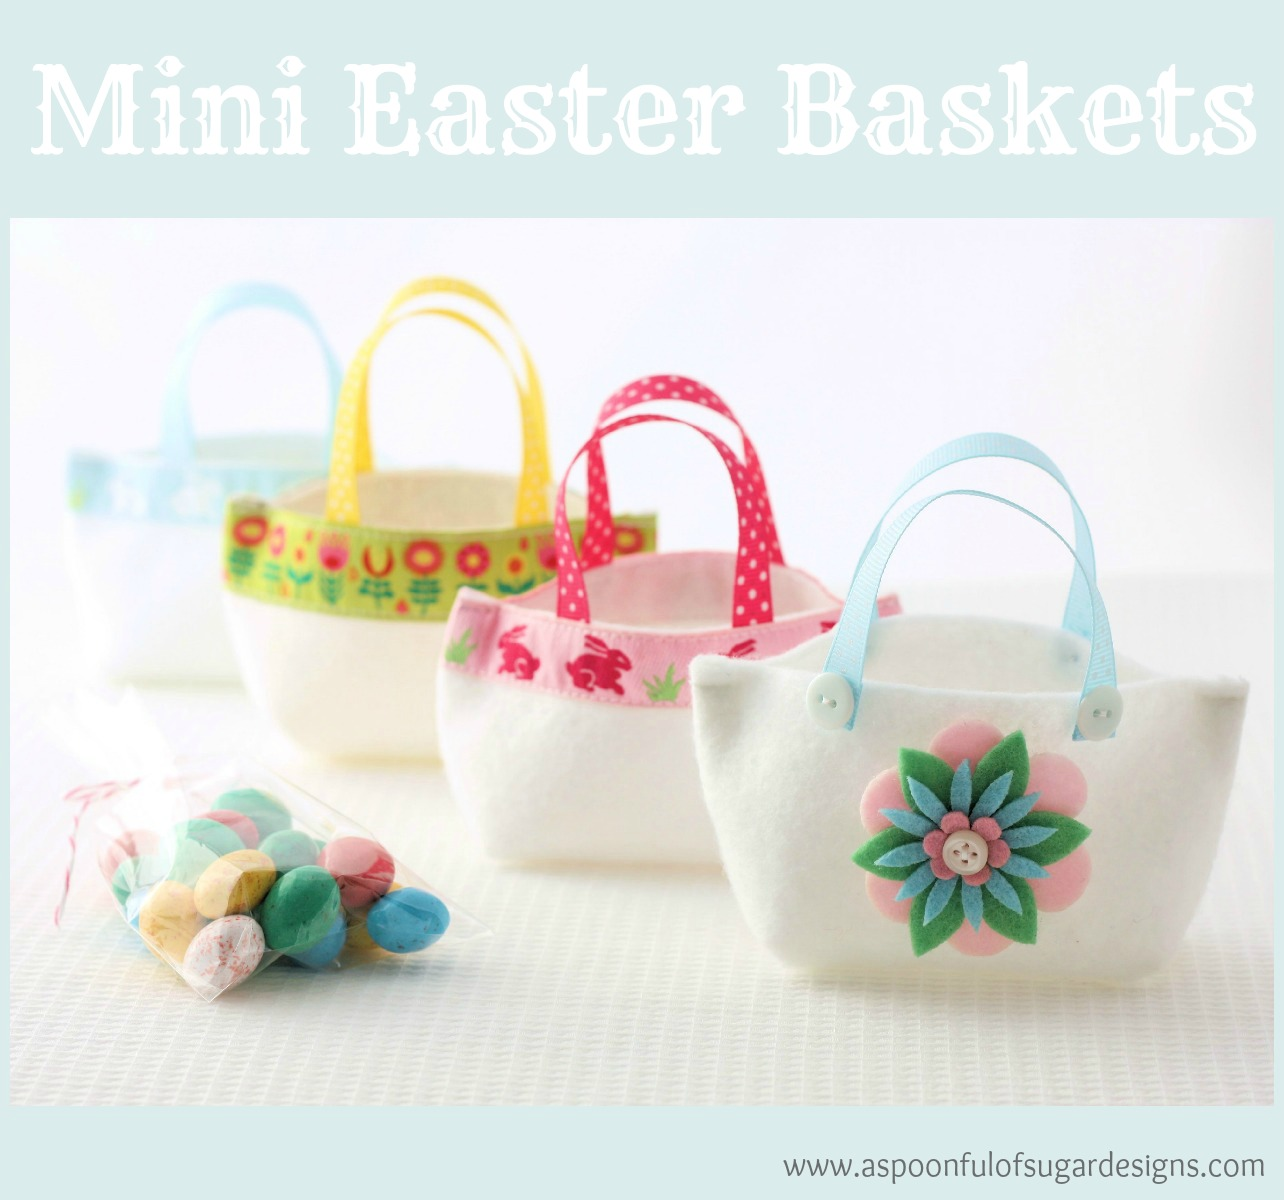 Easter baskets to make a spoonful of sugar with easter only 6 weeks away we have been designing some mini easter baskets to make using small pieces of felt and ribbon from our stash negle Gallery